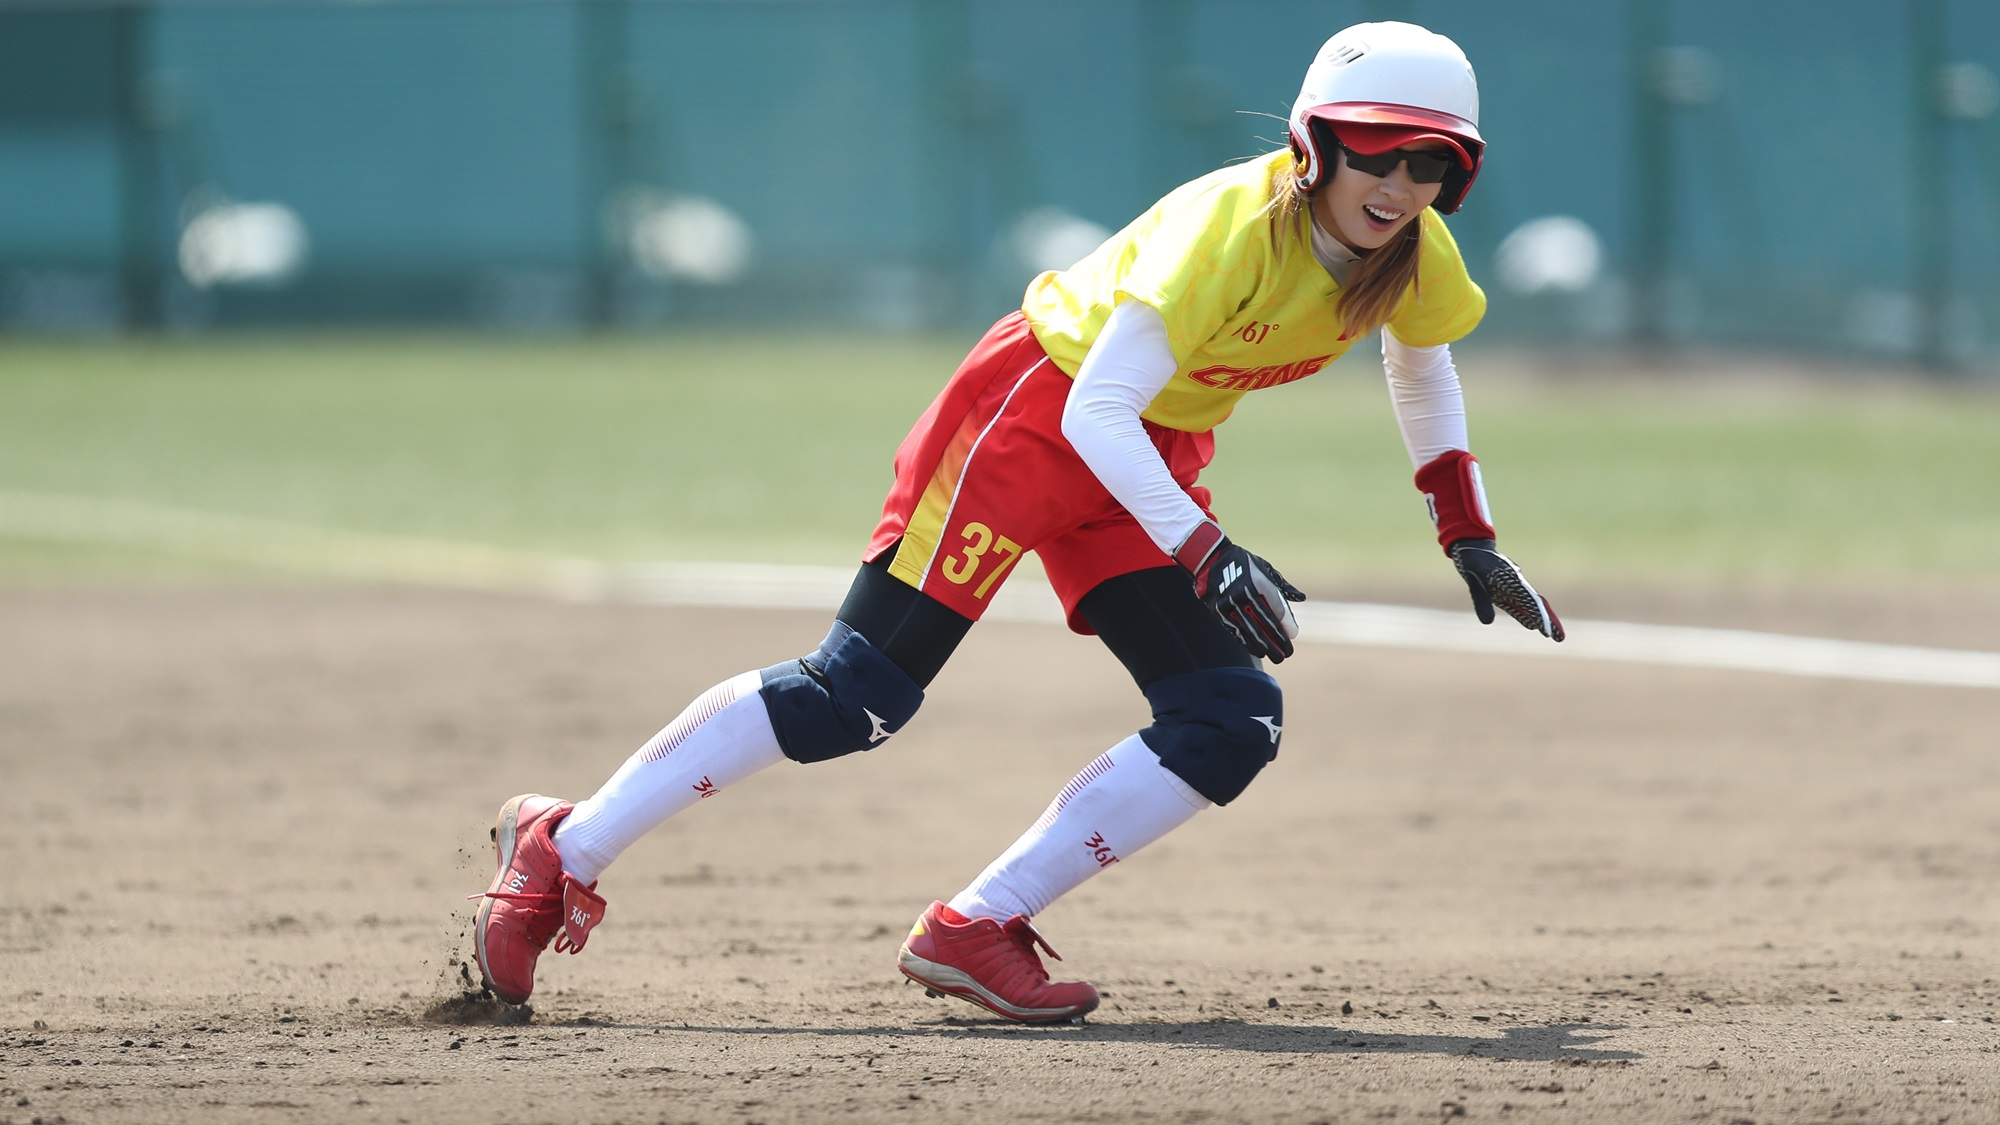 Zhang Yan runs the bases